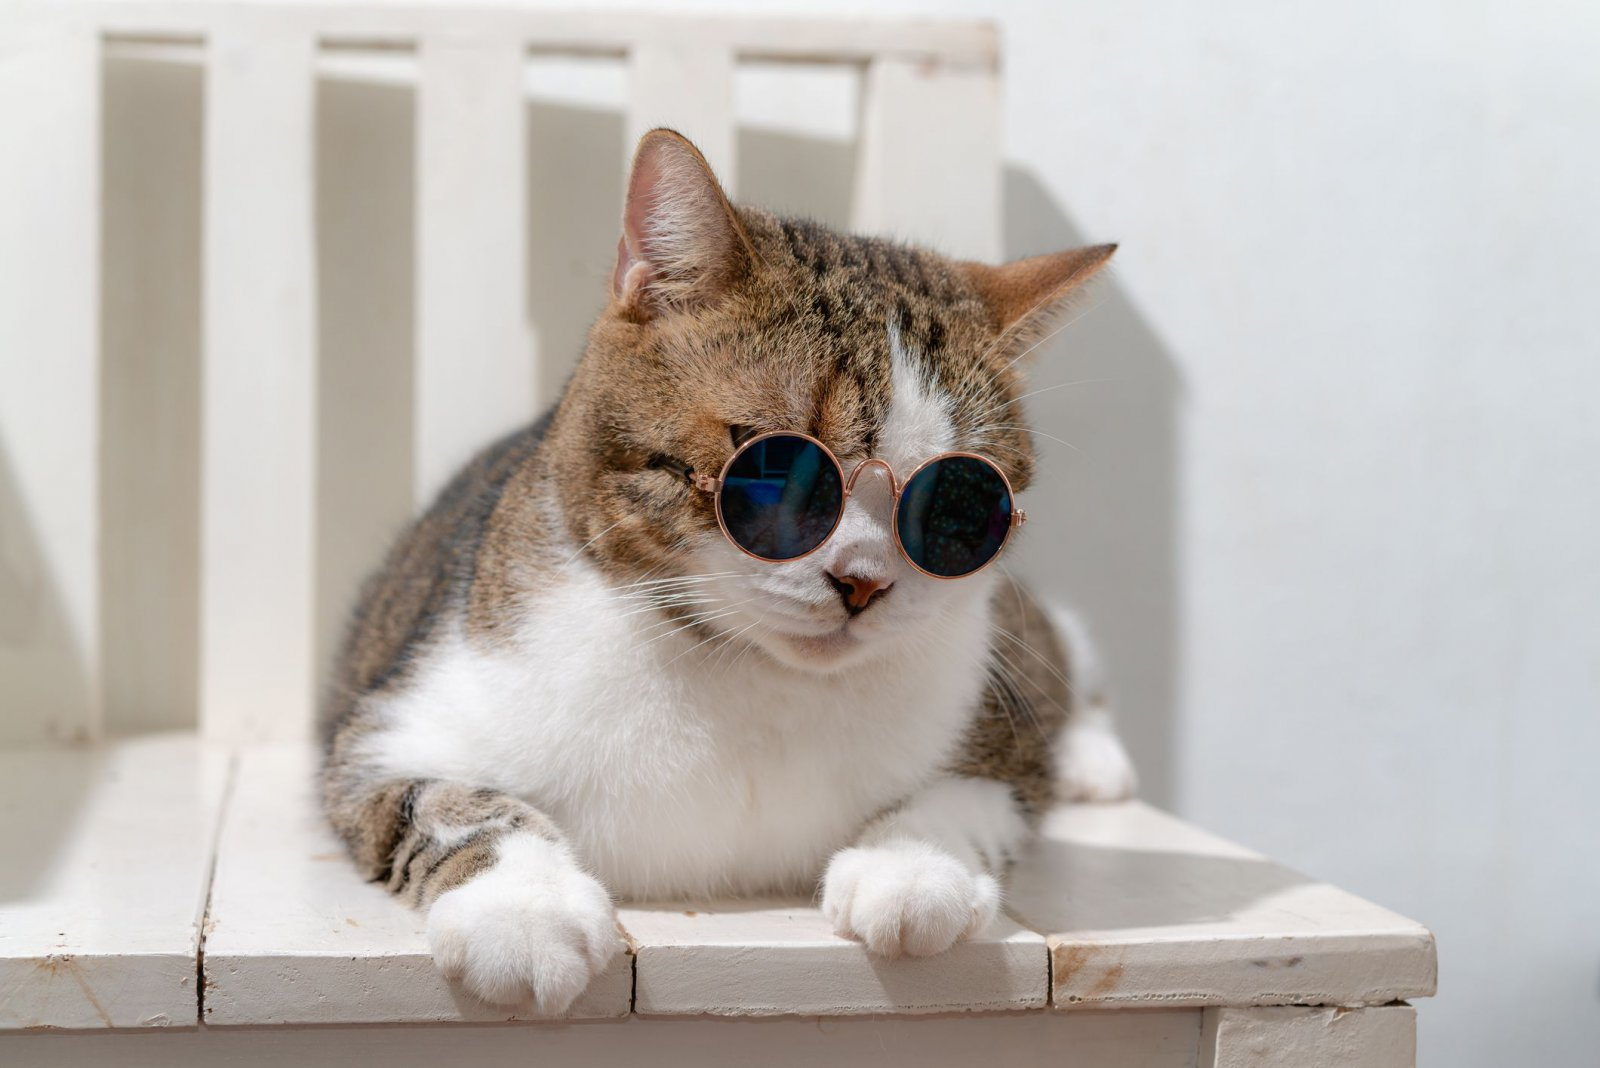 close-up-of-cat-wearing-sunglasses-while-sitting-royalty-free-image-1571755145.jpg